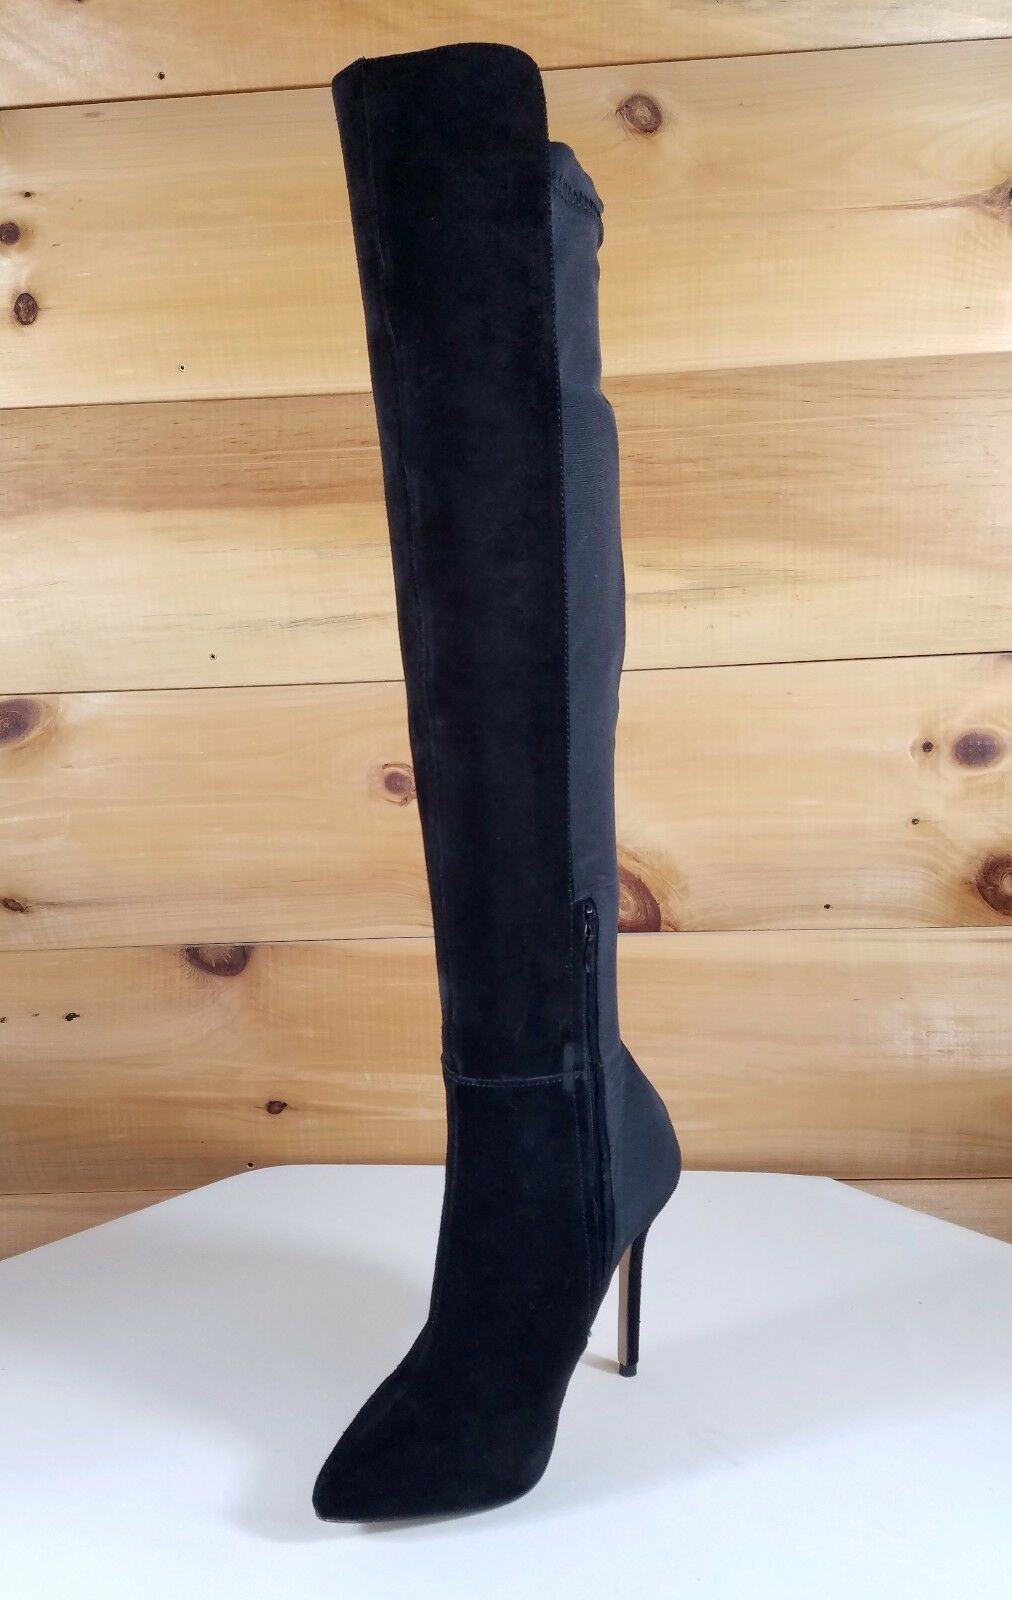 Black Suede Suede Suede Thick Stretch Nylon OTK High Boot 5  Heel Sizes 6 0e011f